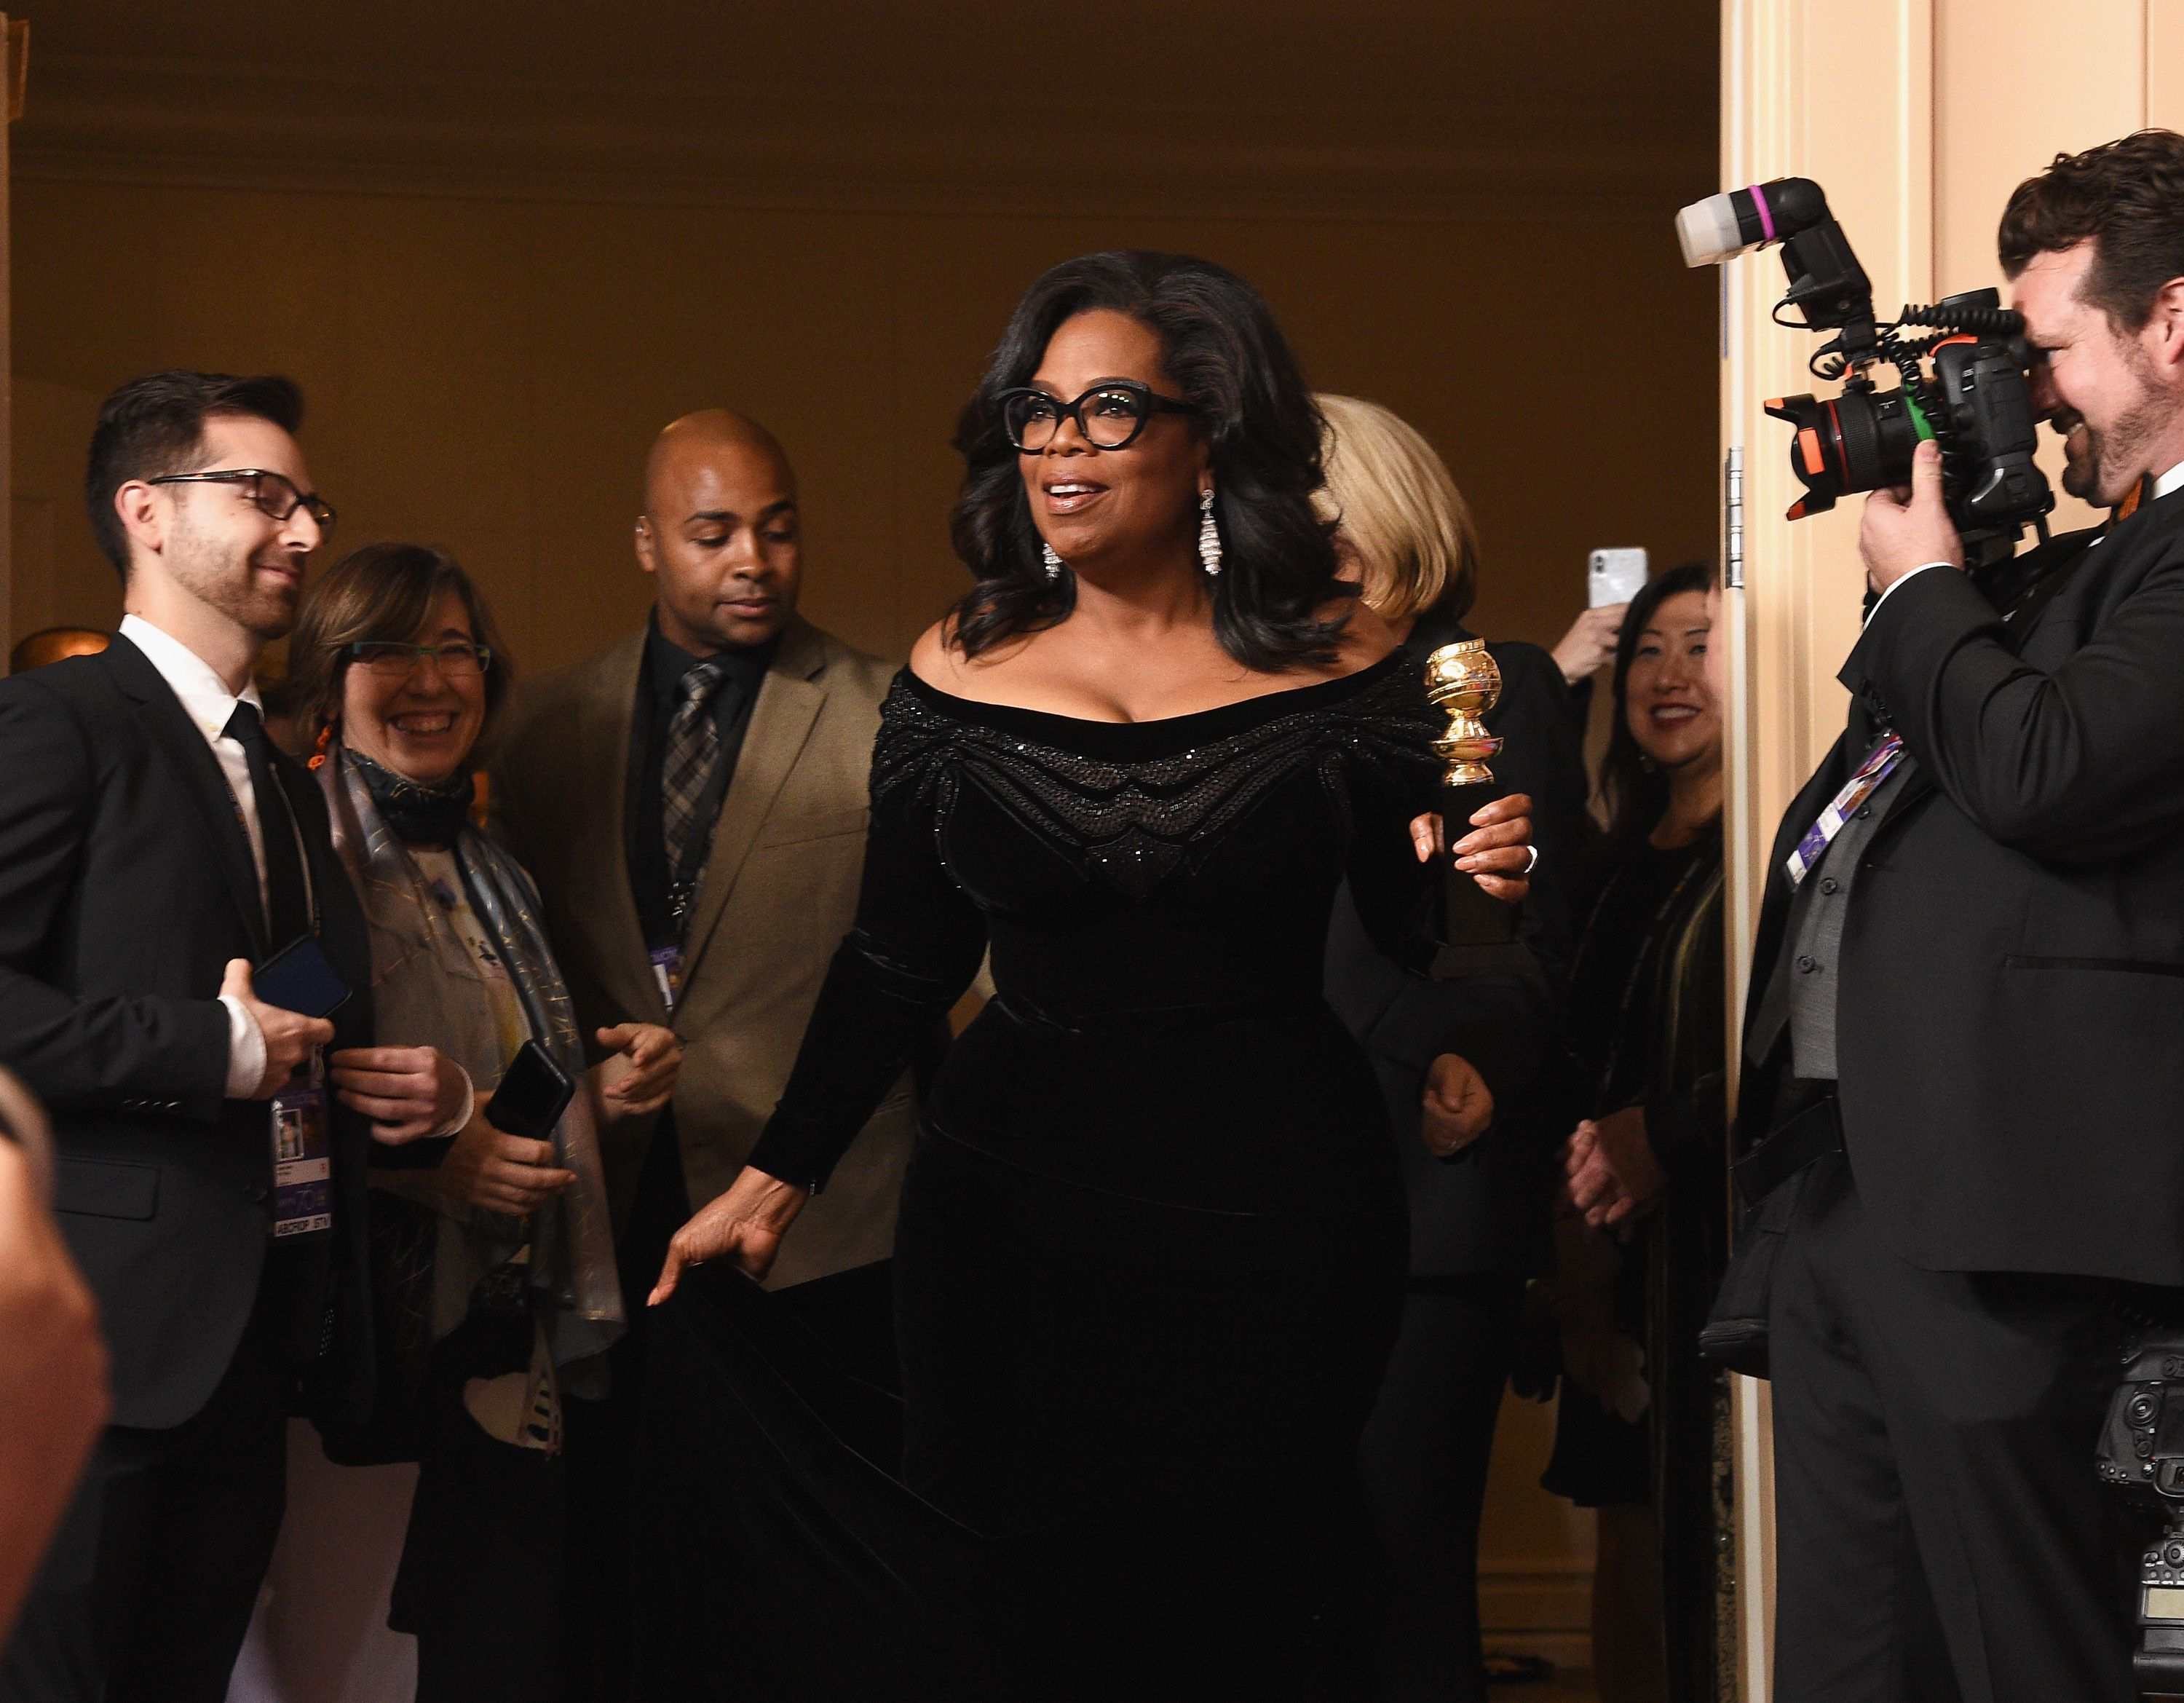 What should you wear to the Oprah show audience?